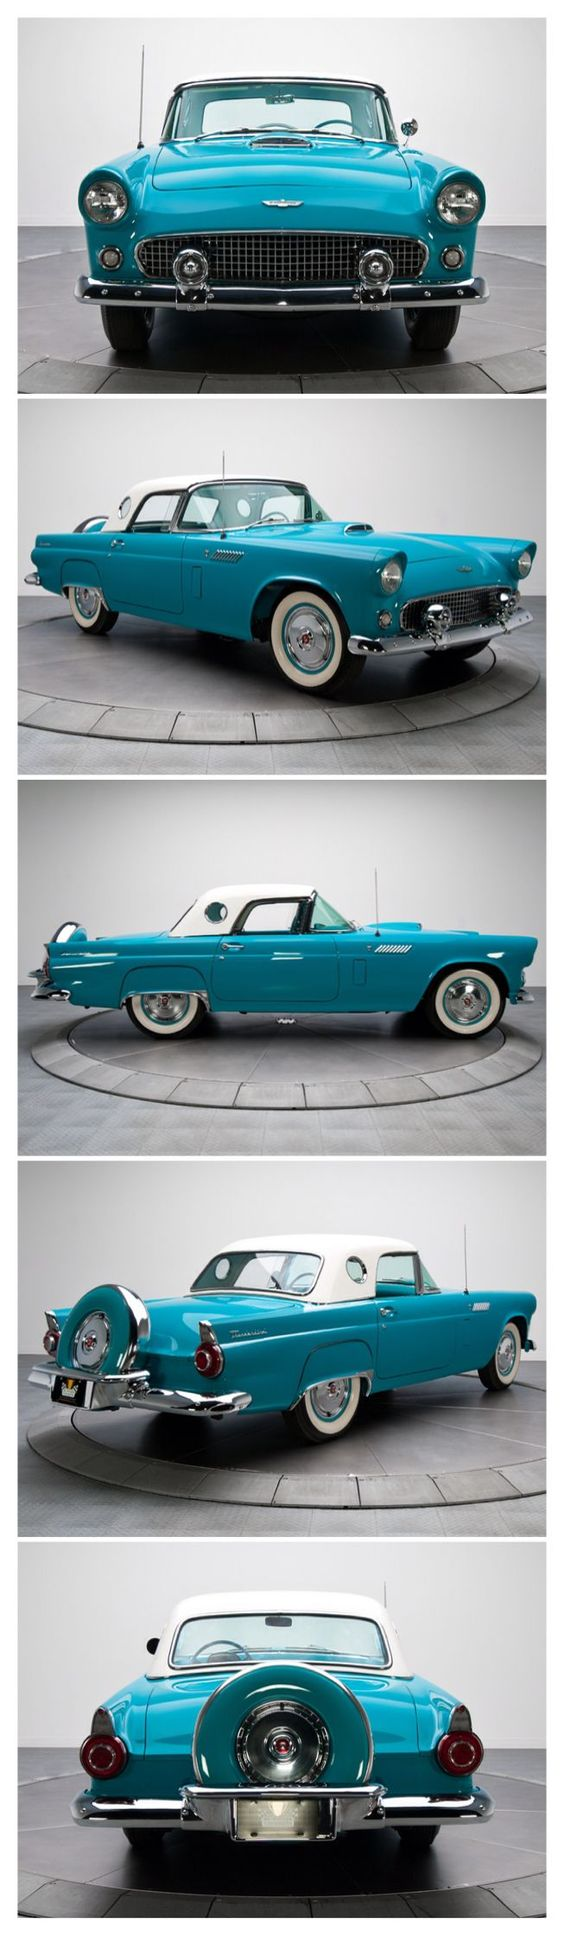 1957 chevy convertible sale mitula cars - 1955 Ford Thunderbird Convertible Re Pin Brought To You By Carinsurance At Houseofinsurance In Eugene Oregon Pinterest Ford Thunderbird